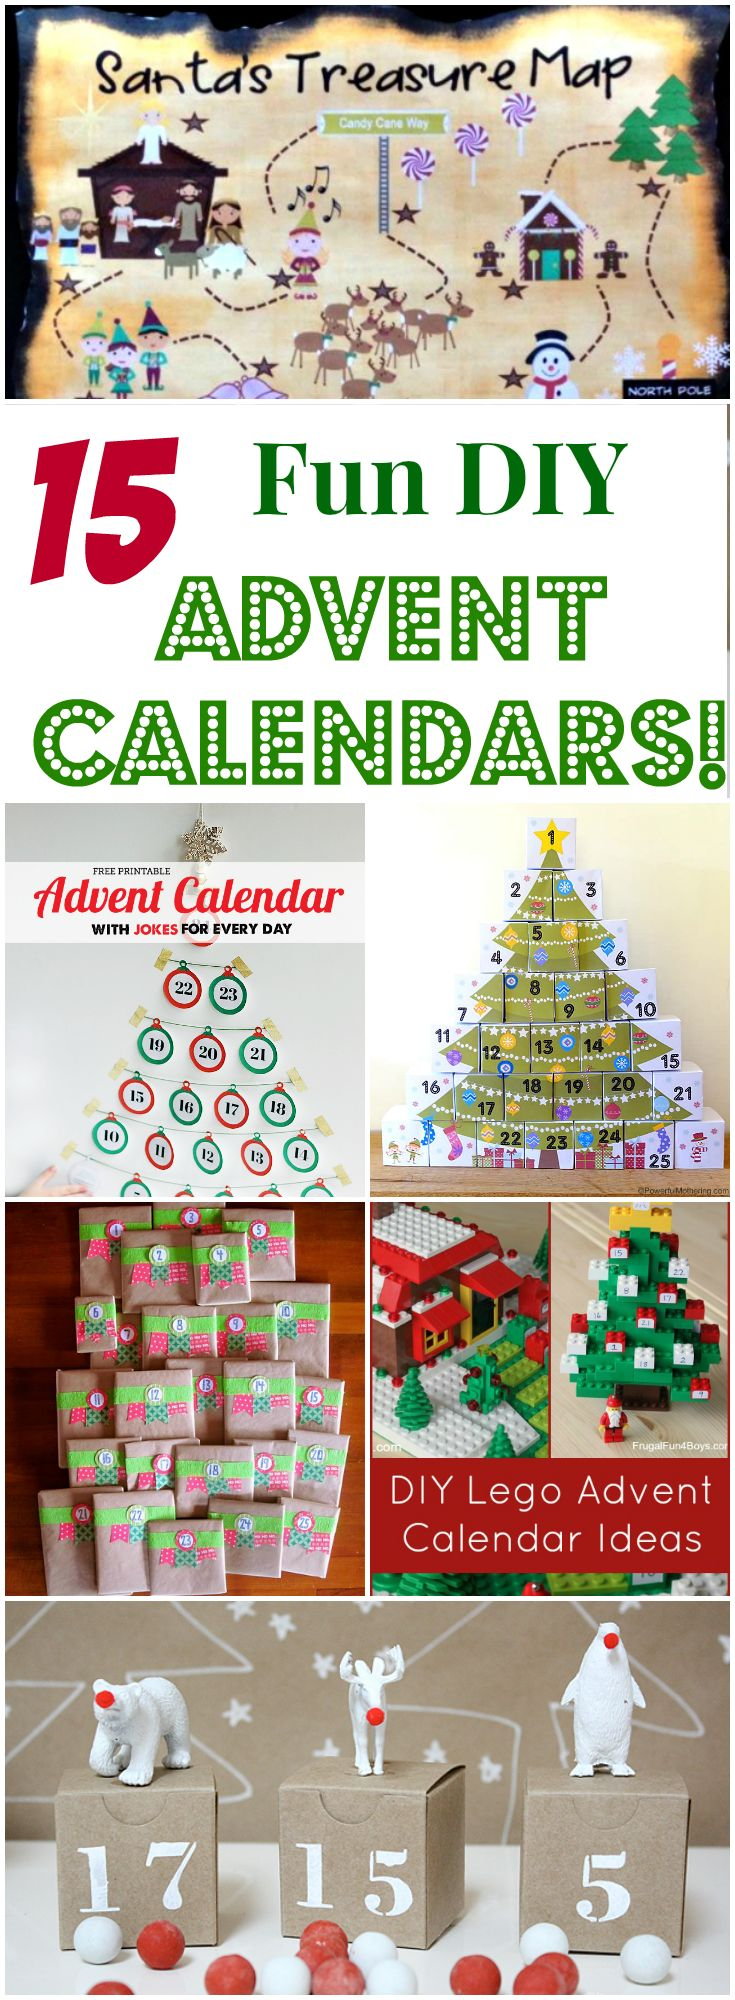 Diy Calendar For Kids : Fun diy advent calendars for kids letters from santa